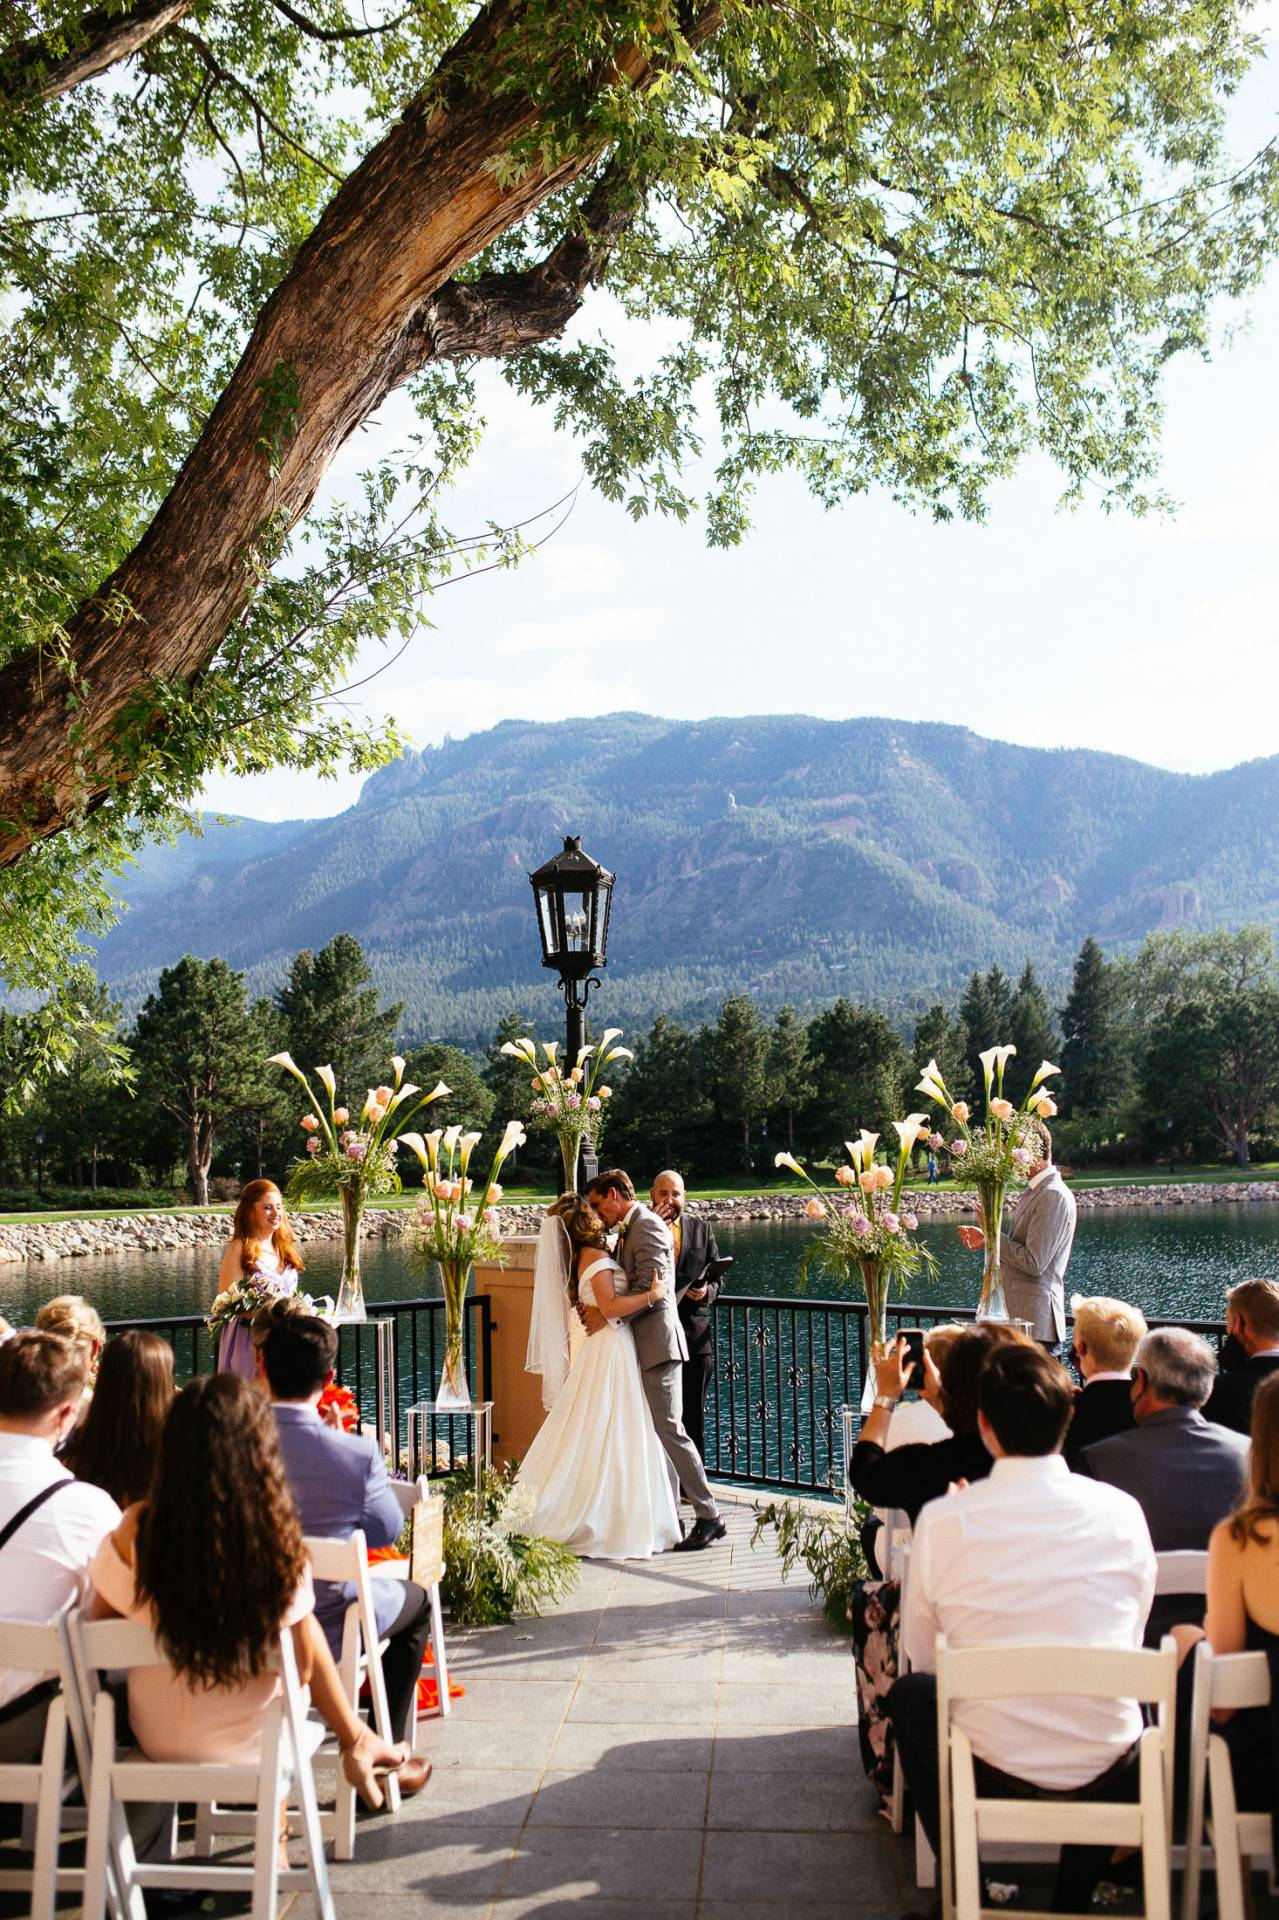 Bride and groom kiss at the end of the wedding ceremony at The Broadmoor's South Tower.